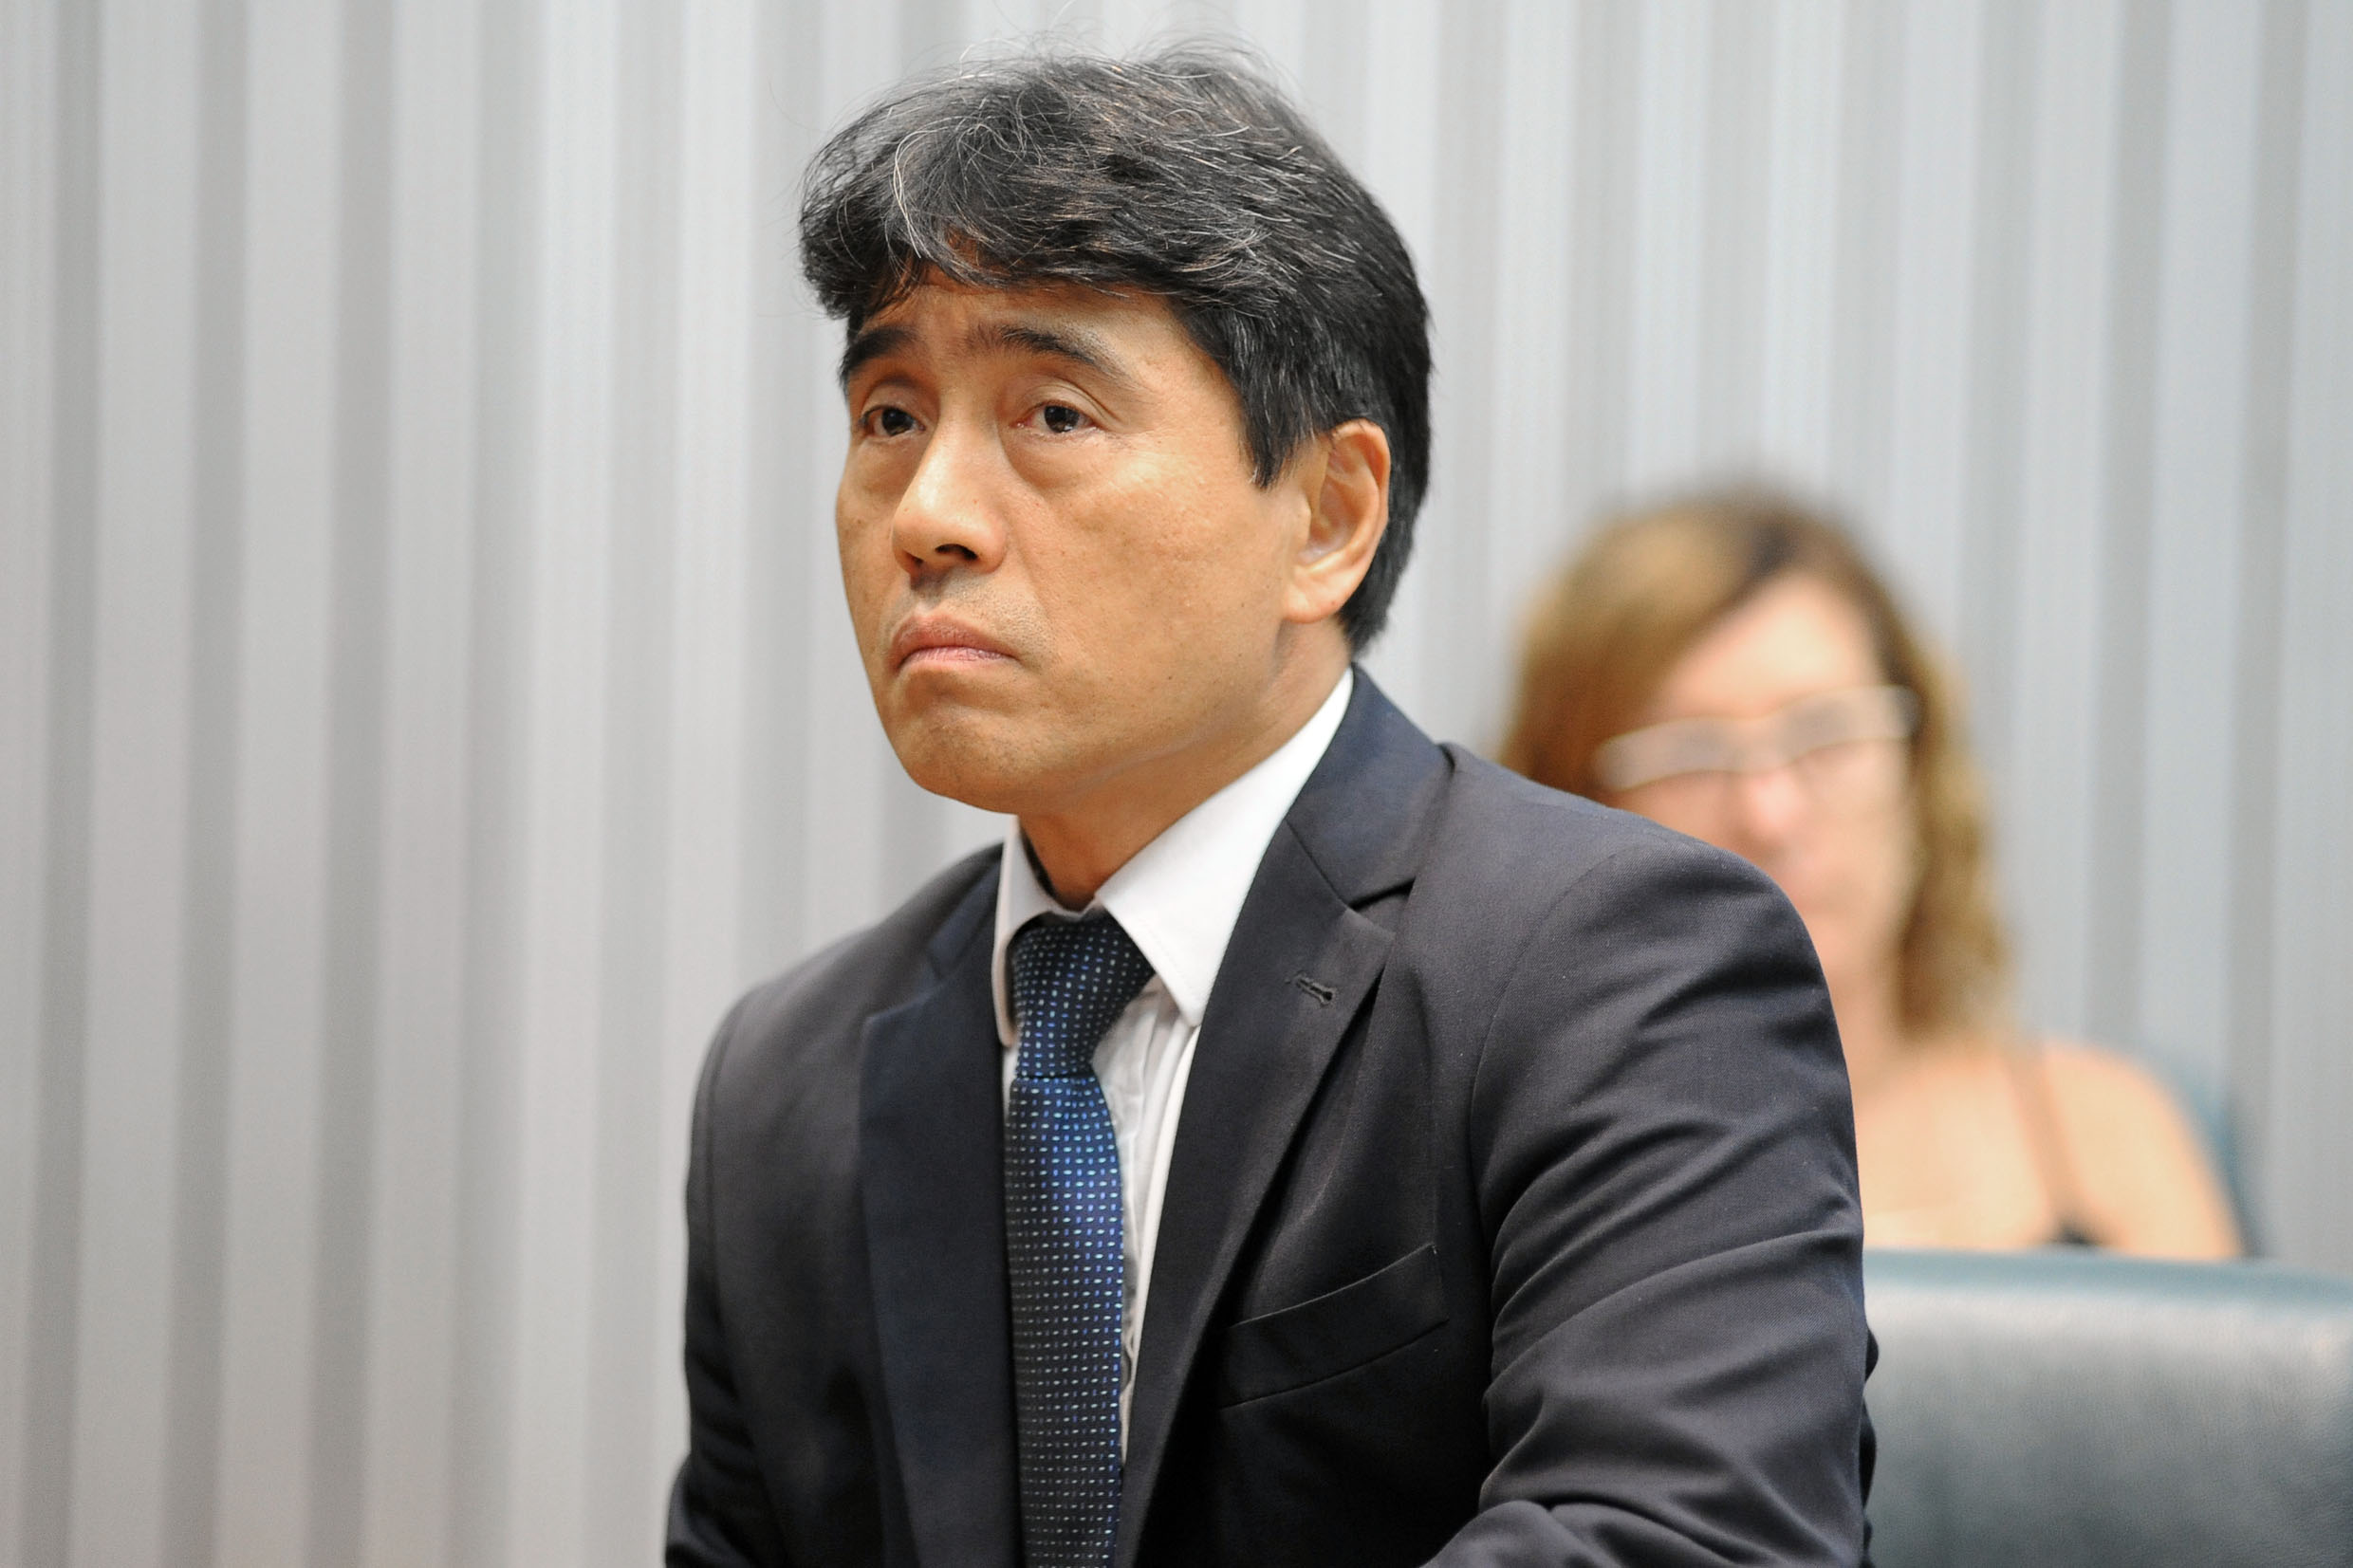 Hélio Nishimoto<a style='float:right' href='https://www3.al.sp.gov.br/repositorio/noticia/N-03-2018/fg219306.jpg' target=_blank><img src='/_img/material-file-download-white.png' width='14px' alt='Clique para baixar a imagem'></a>